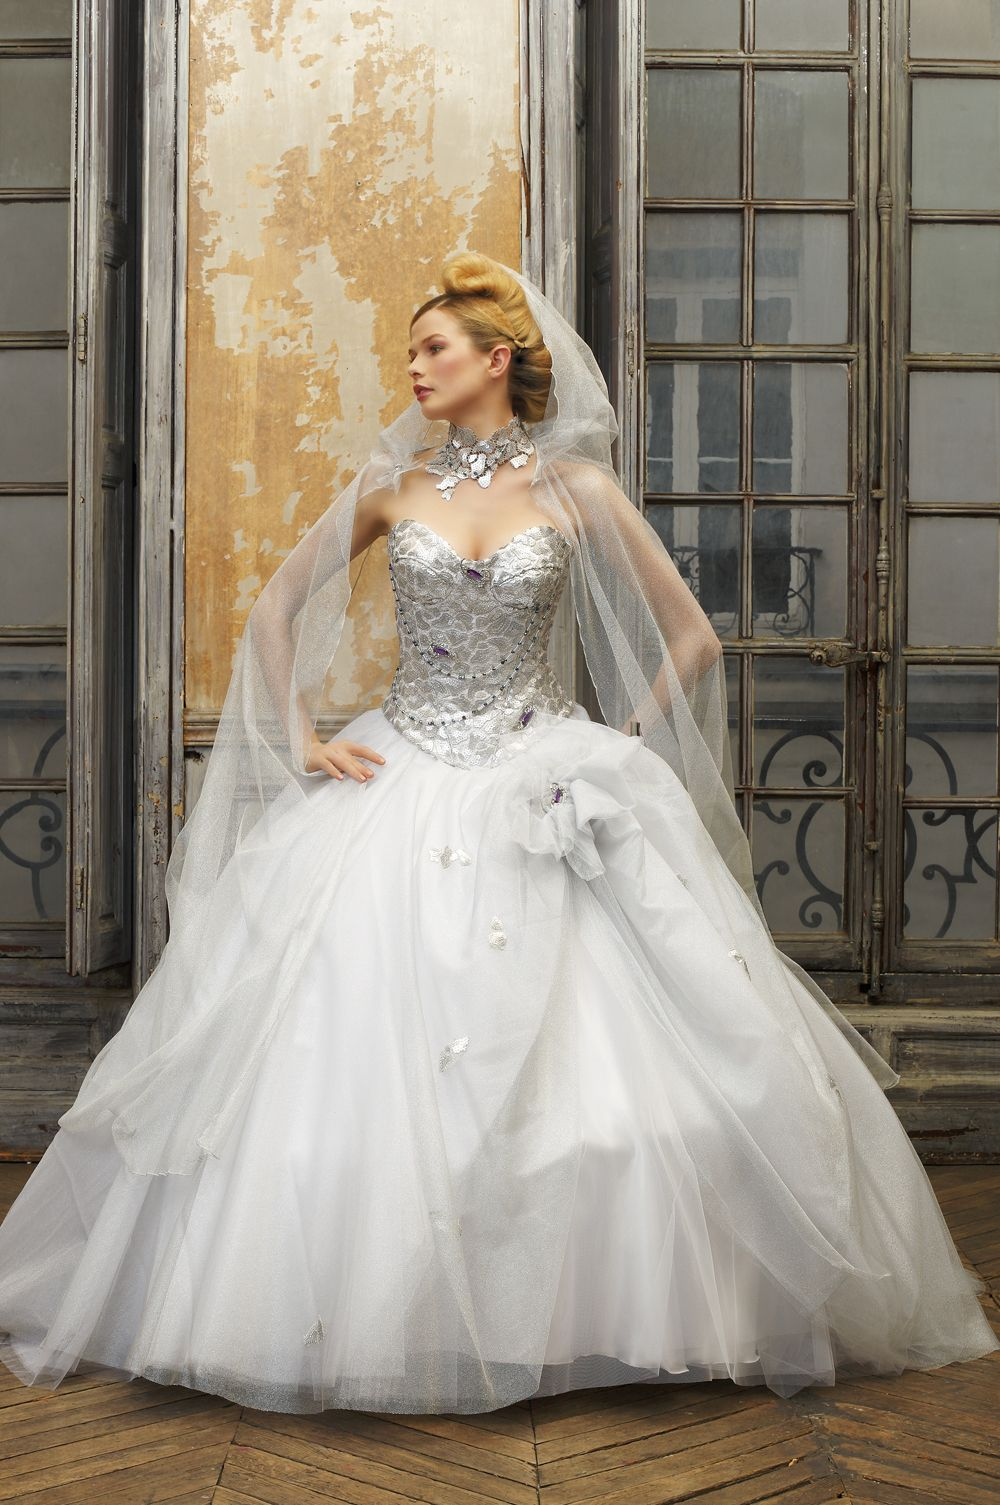 silver wedding dresses Ely Shay Wedding Dress Collections Catechu Silver Dress sequined corset lace perhaps inspired by Pnina s Marie Antoinette silver dress Pinterest